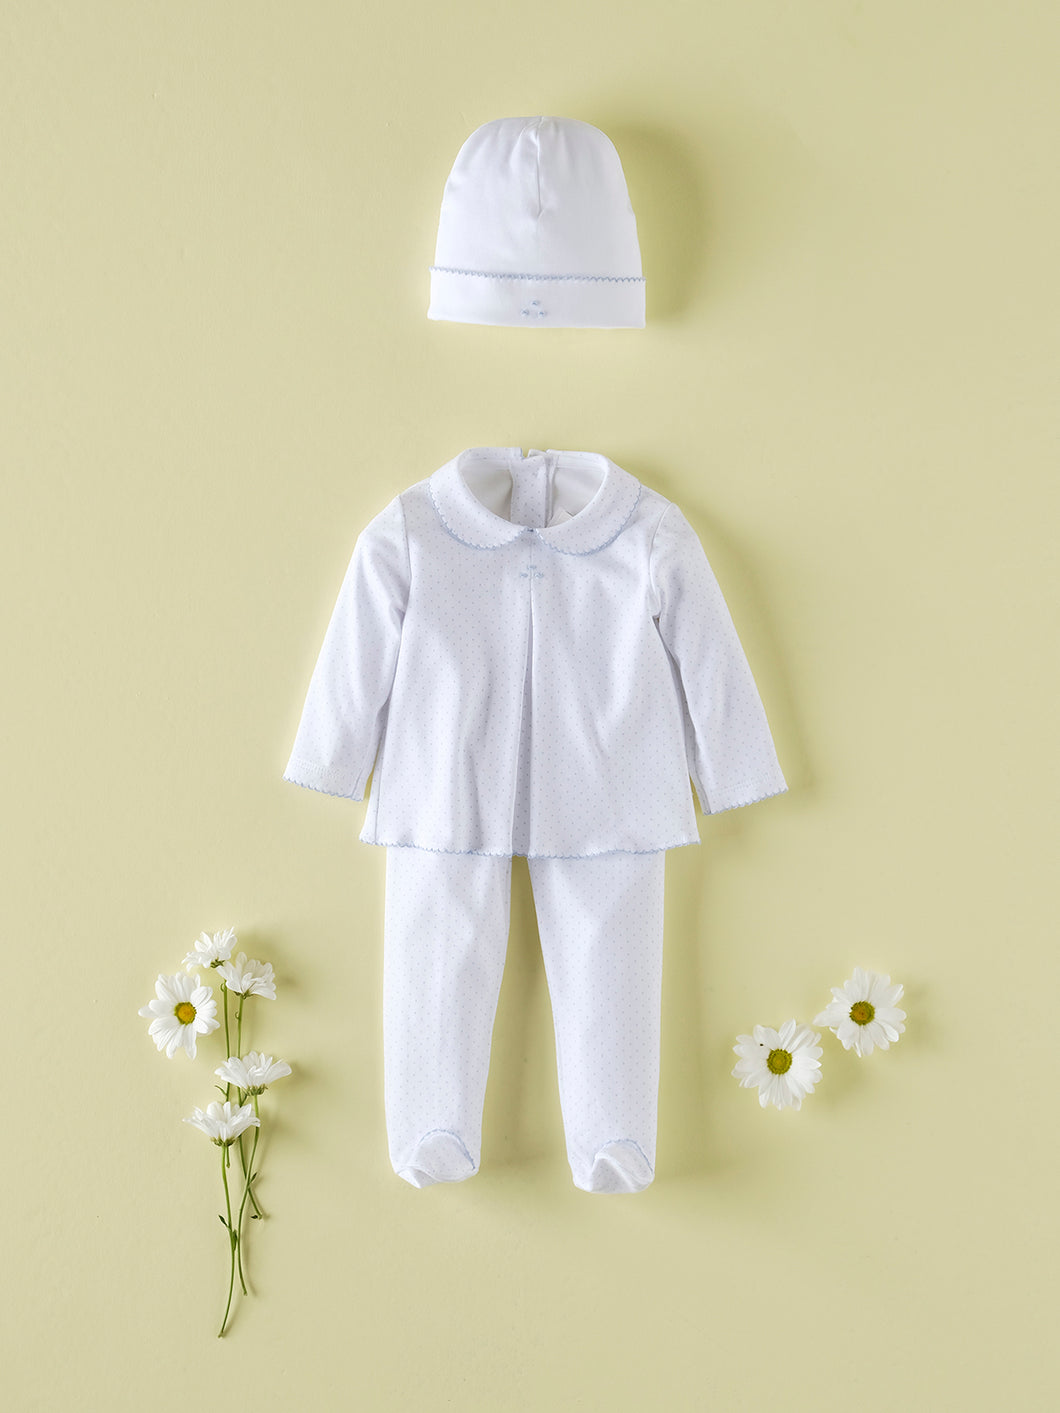 BABY SET. MADE OF SOFT COTTON